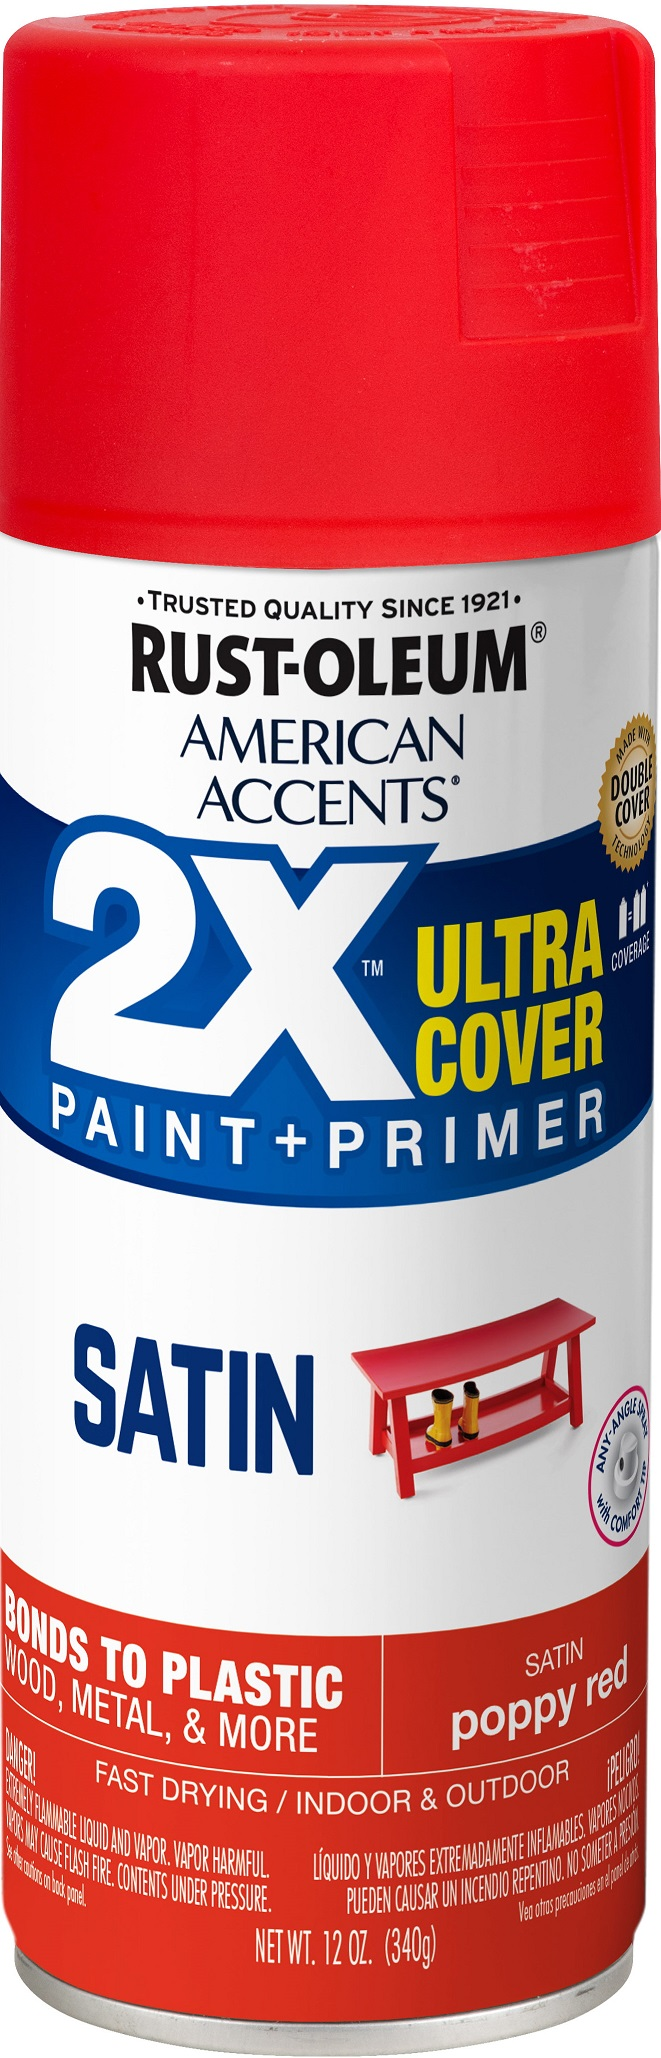 (3 Pack) Rust-Oleum American Accents Ultra Cover 2X Satin Poppy Red Spray Paint and Primer in 1, 12 oz